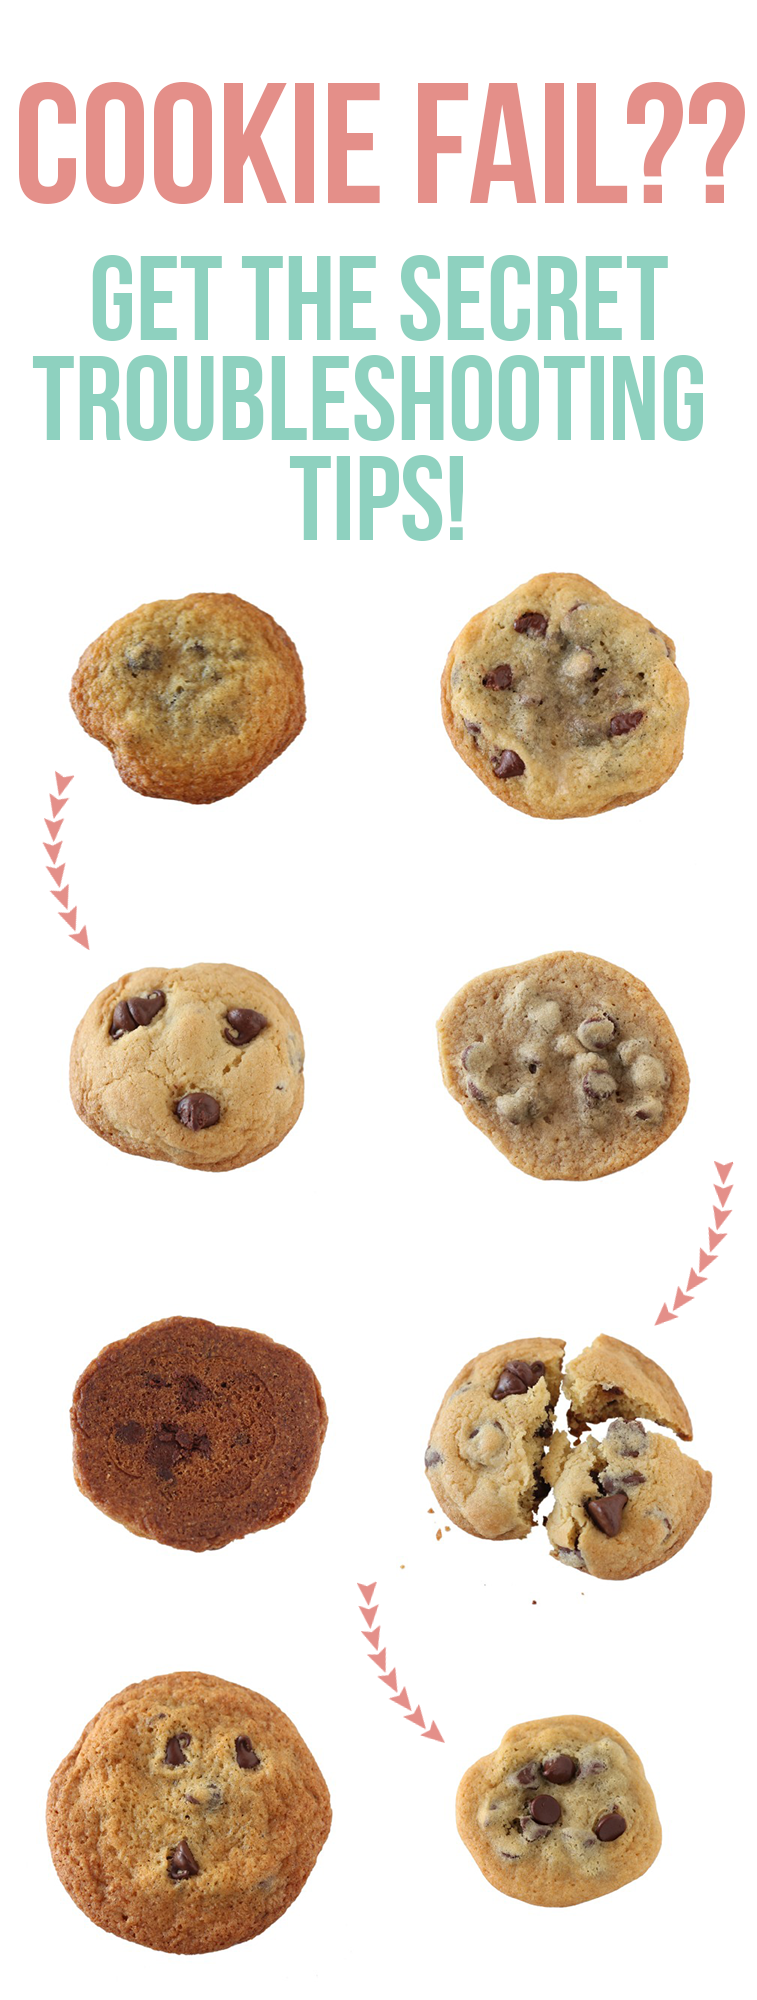 Fix cookies that are too flat, thick, greasy, crumbly, hard, or blah ...